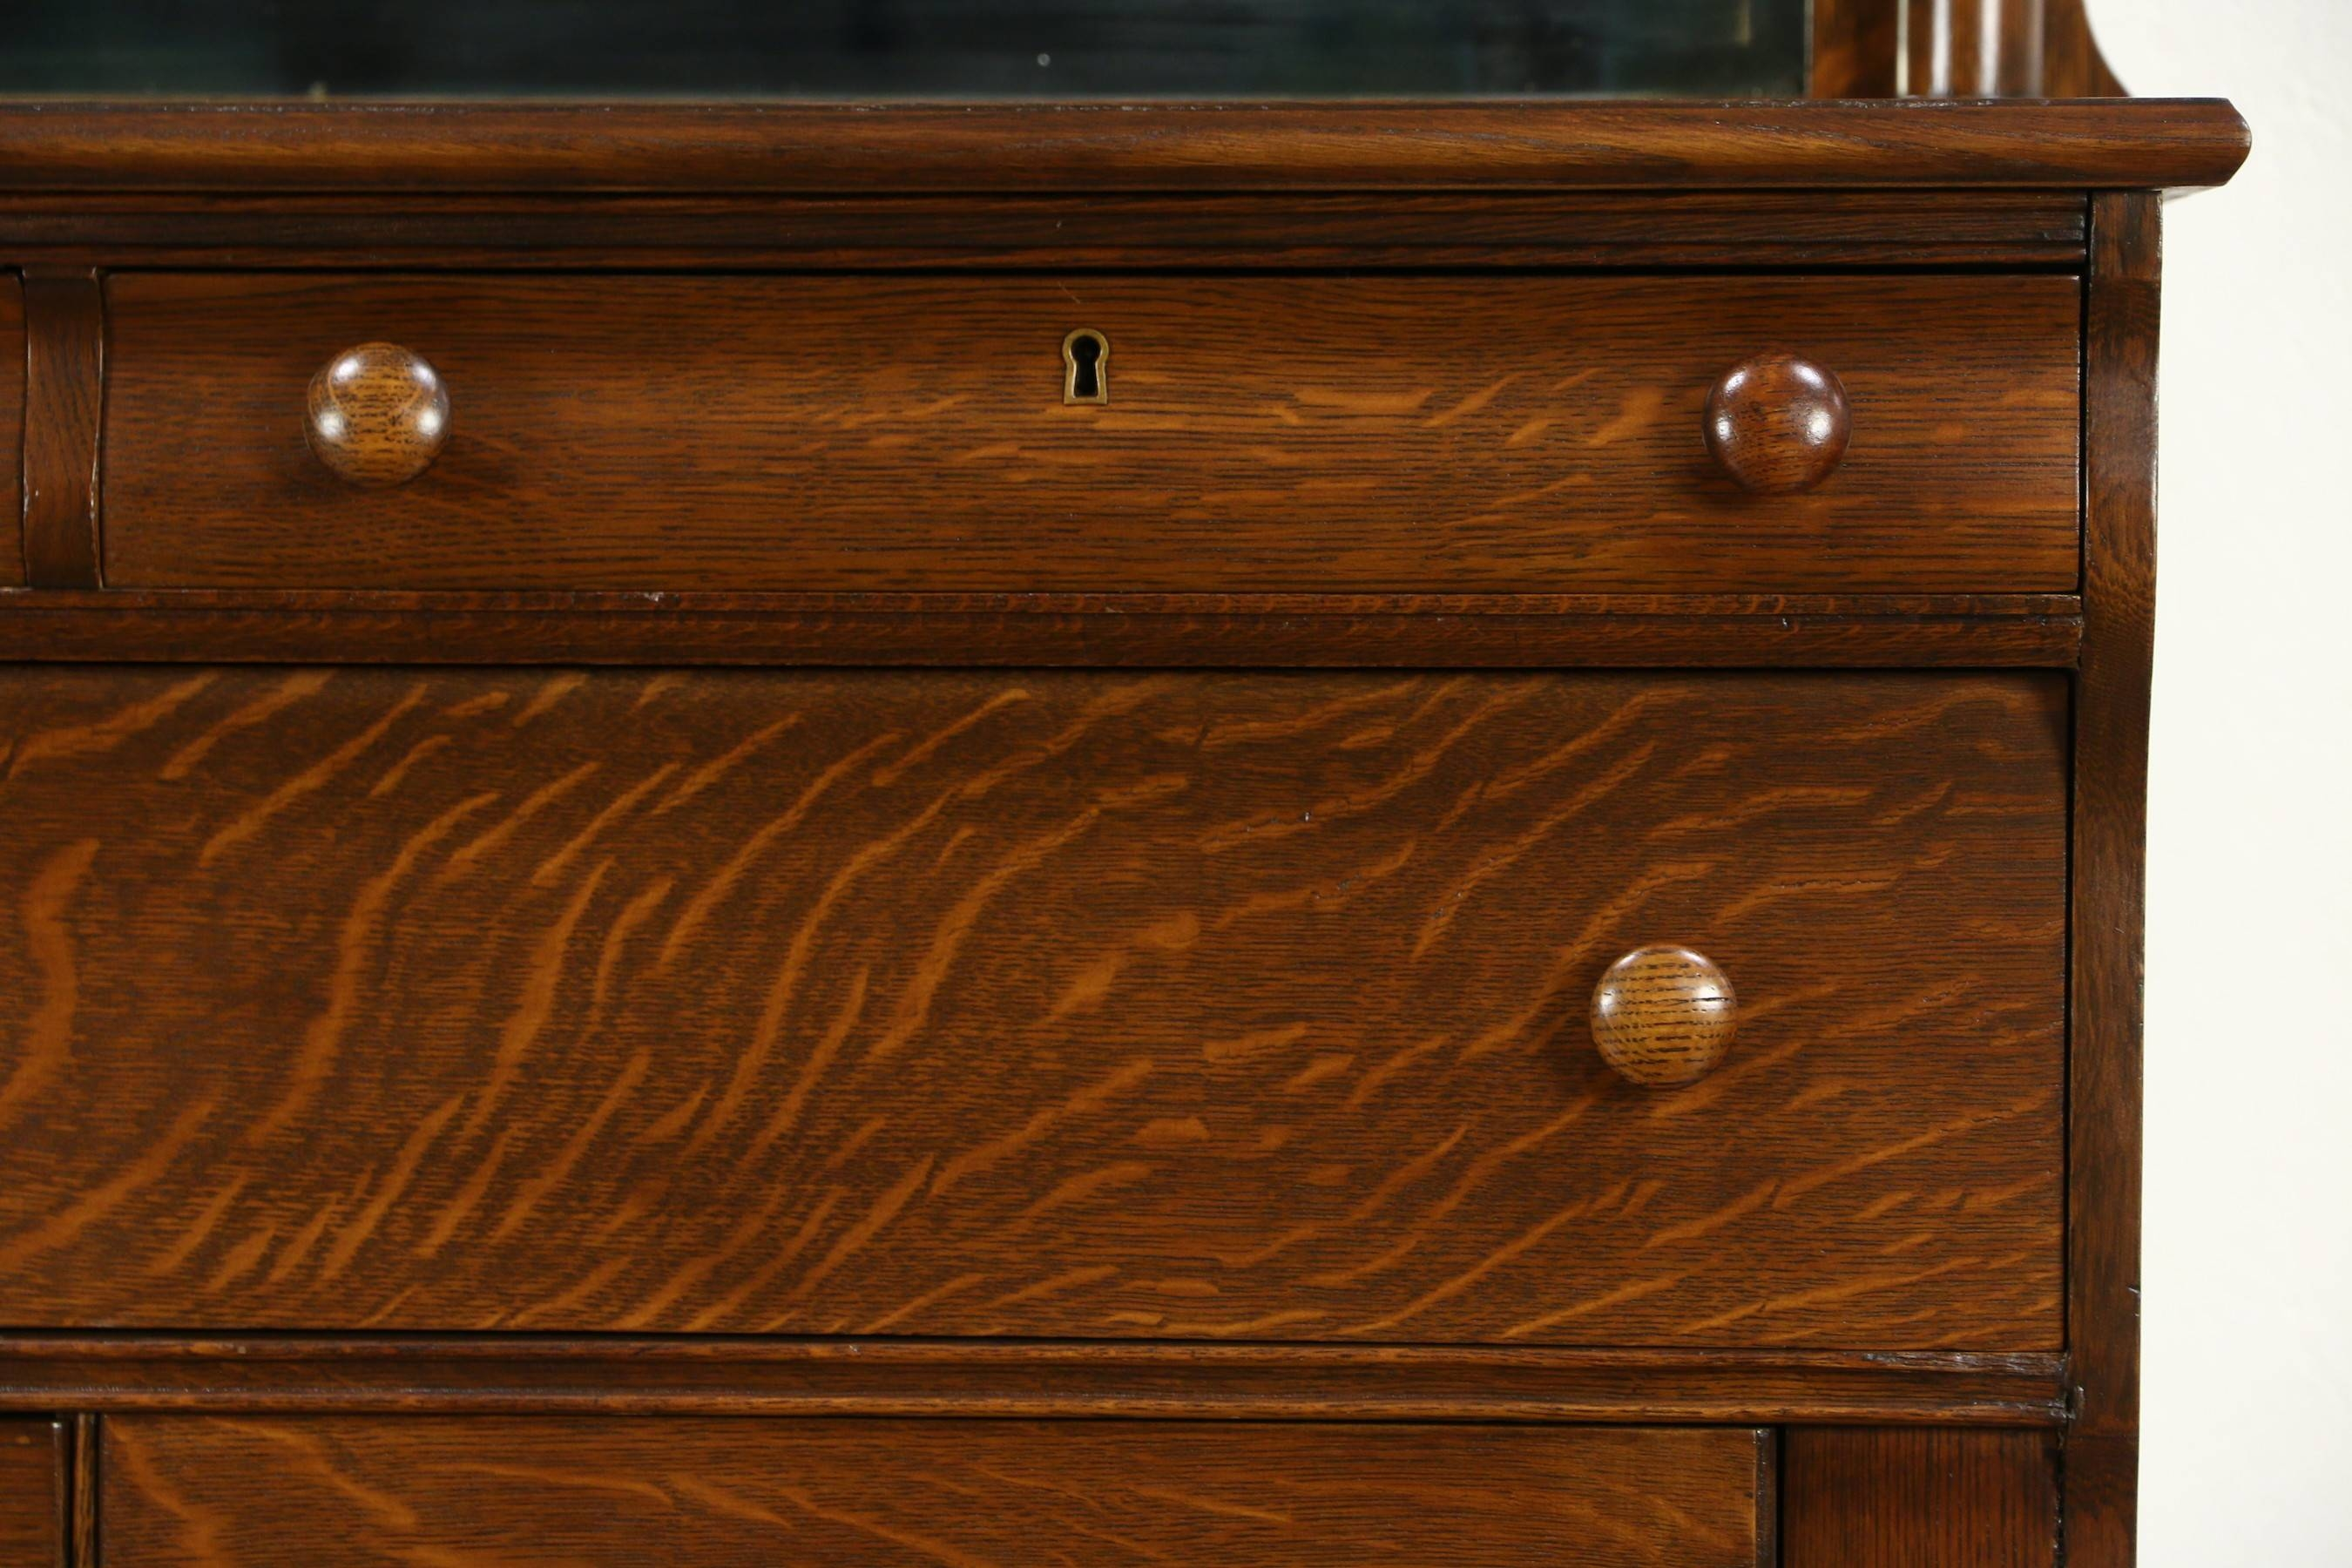 Sold – Empire 1910 Antique Oak Sideboard, Server Or Buffet, Lion Regarding Most Up To Date Antique Oak Sideboards (#10 of 15)